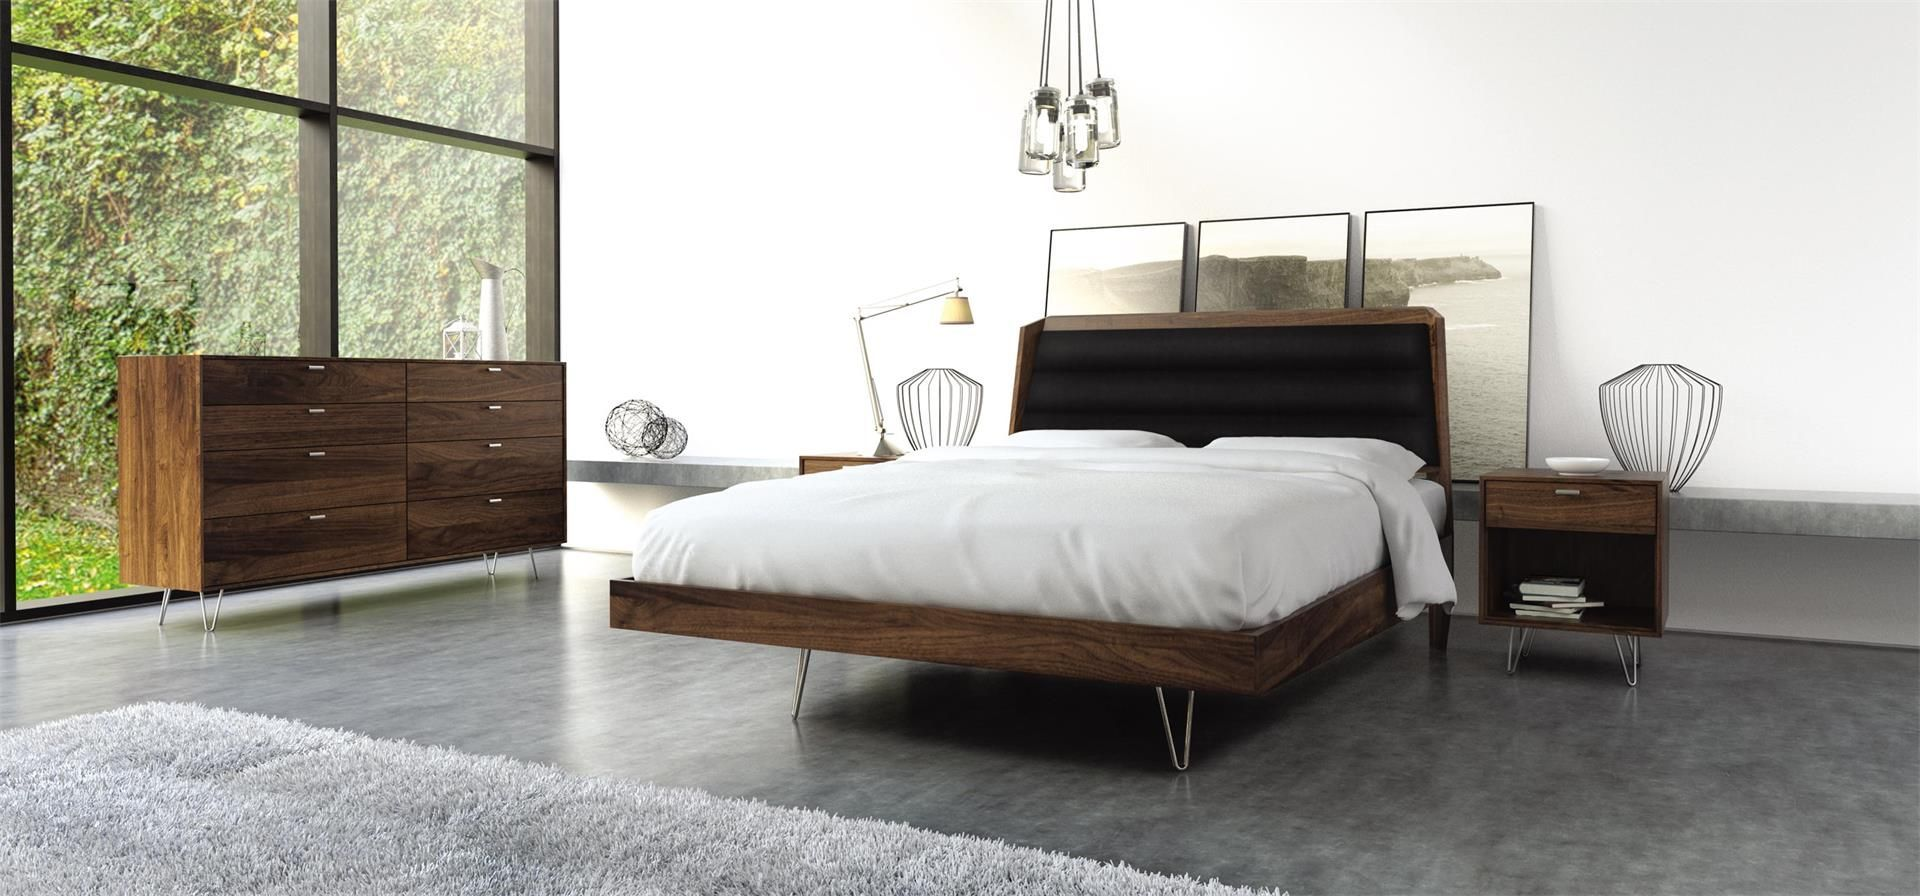 Copeland Canto Bed By Copeland Furniture On Eco Friendly Digs